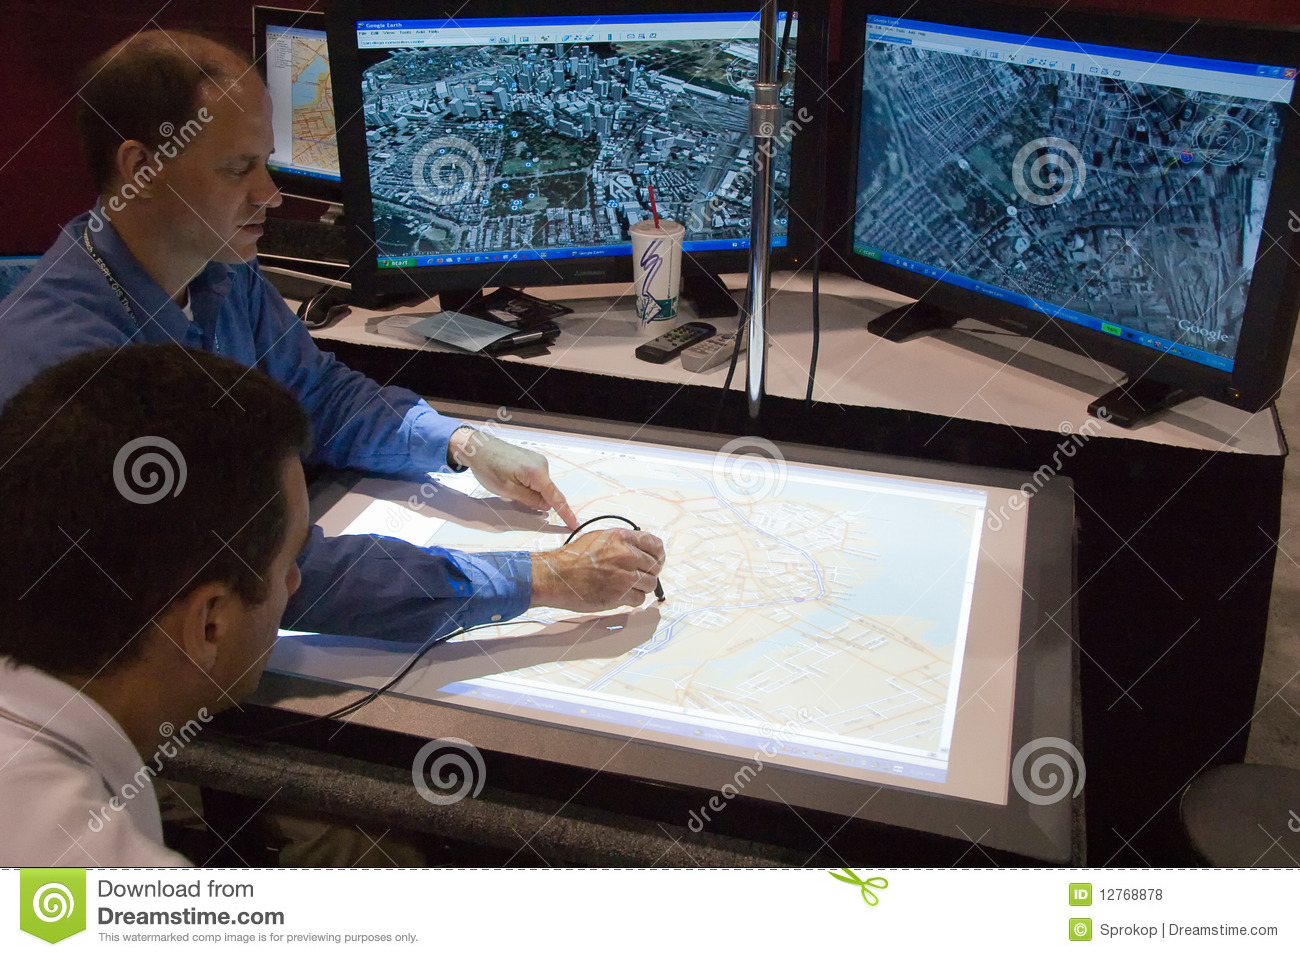 Digitizing Maps At The ESRI User Conference Editorial Stock ... on advertising maps, organizing maps, painting maps, digimon world 4 maps, surveying maps,